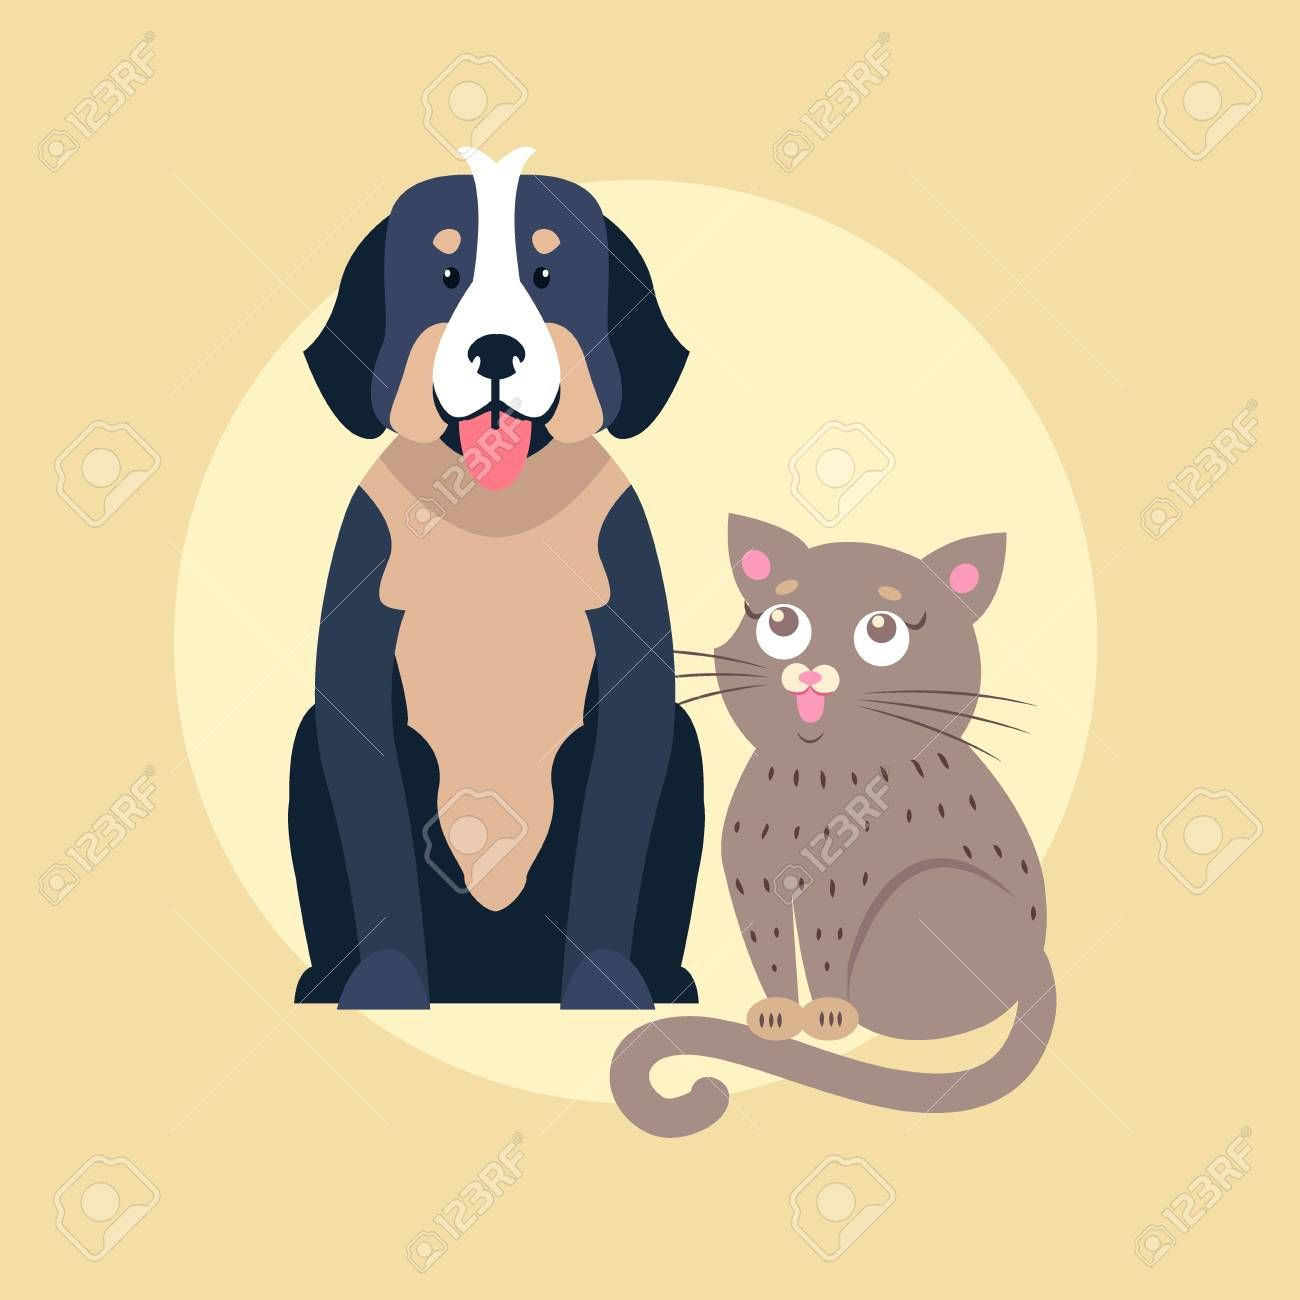 Cute Dog And Cat Cartoon Flat Vector Icon Sponsored Cat Dog